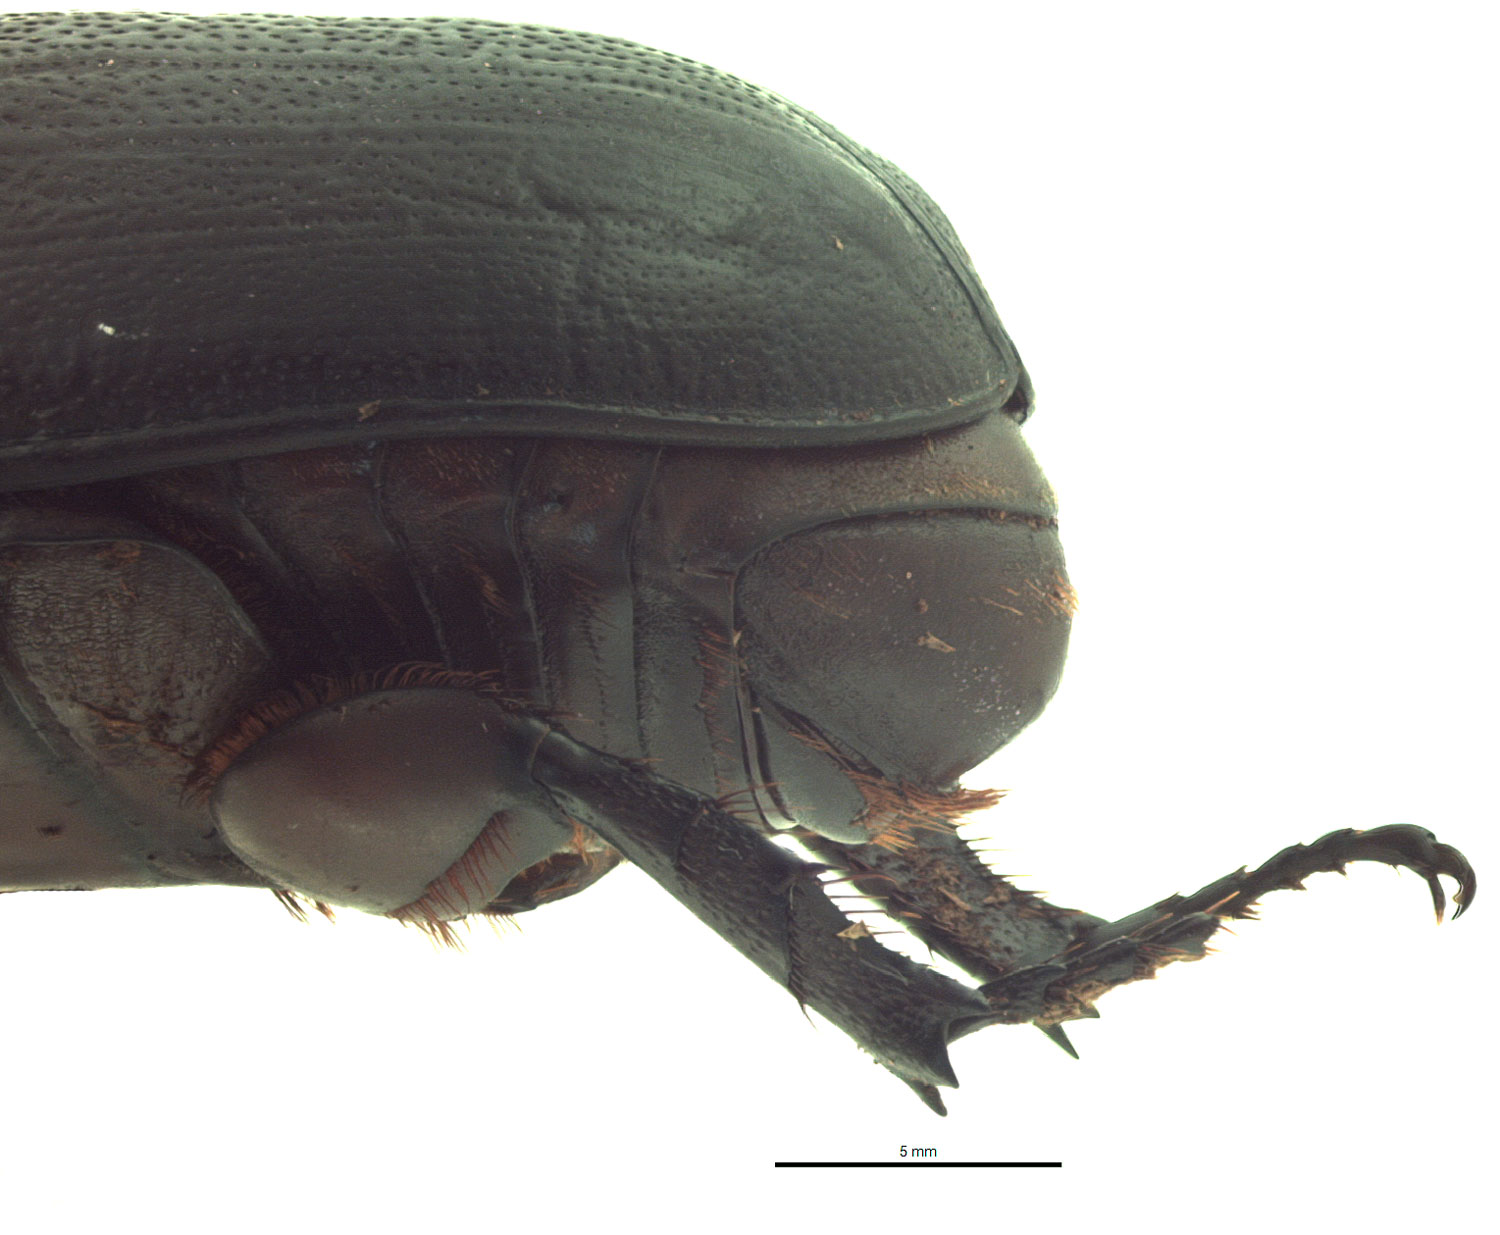 Oryctes rhinoceros male pygidium, lateral view; photo by E.L. Engasser